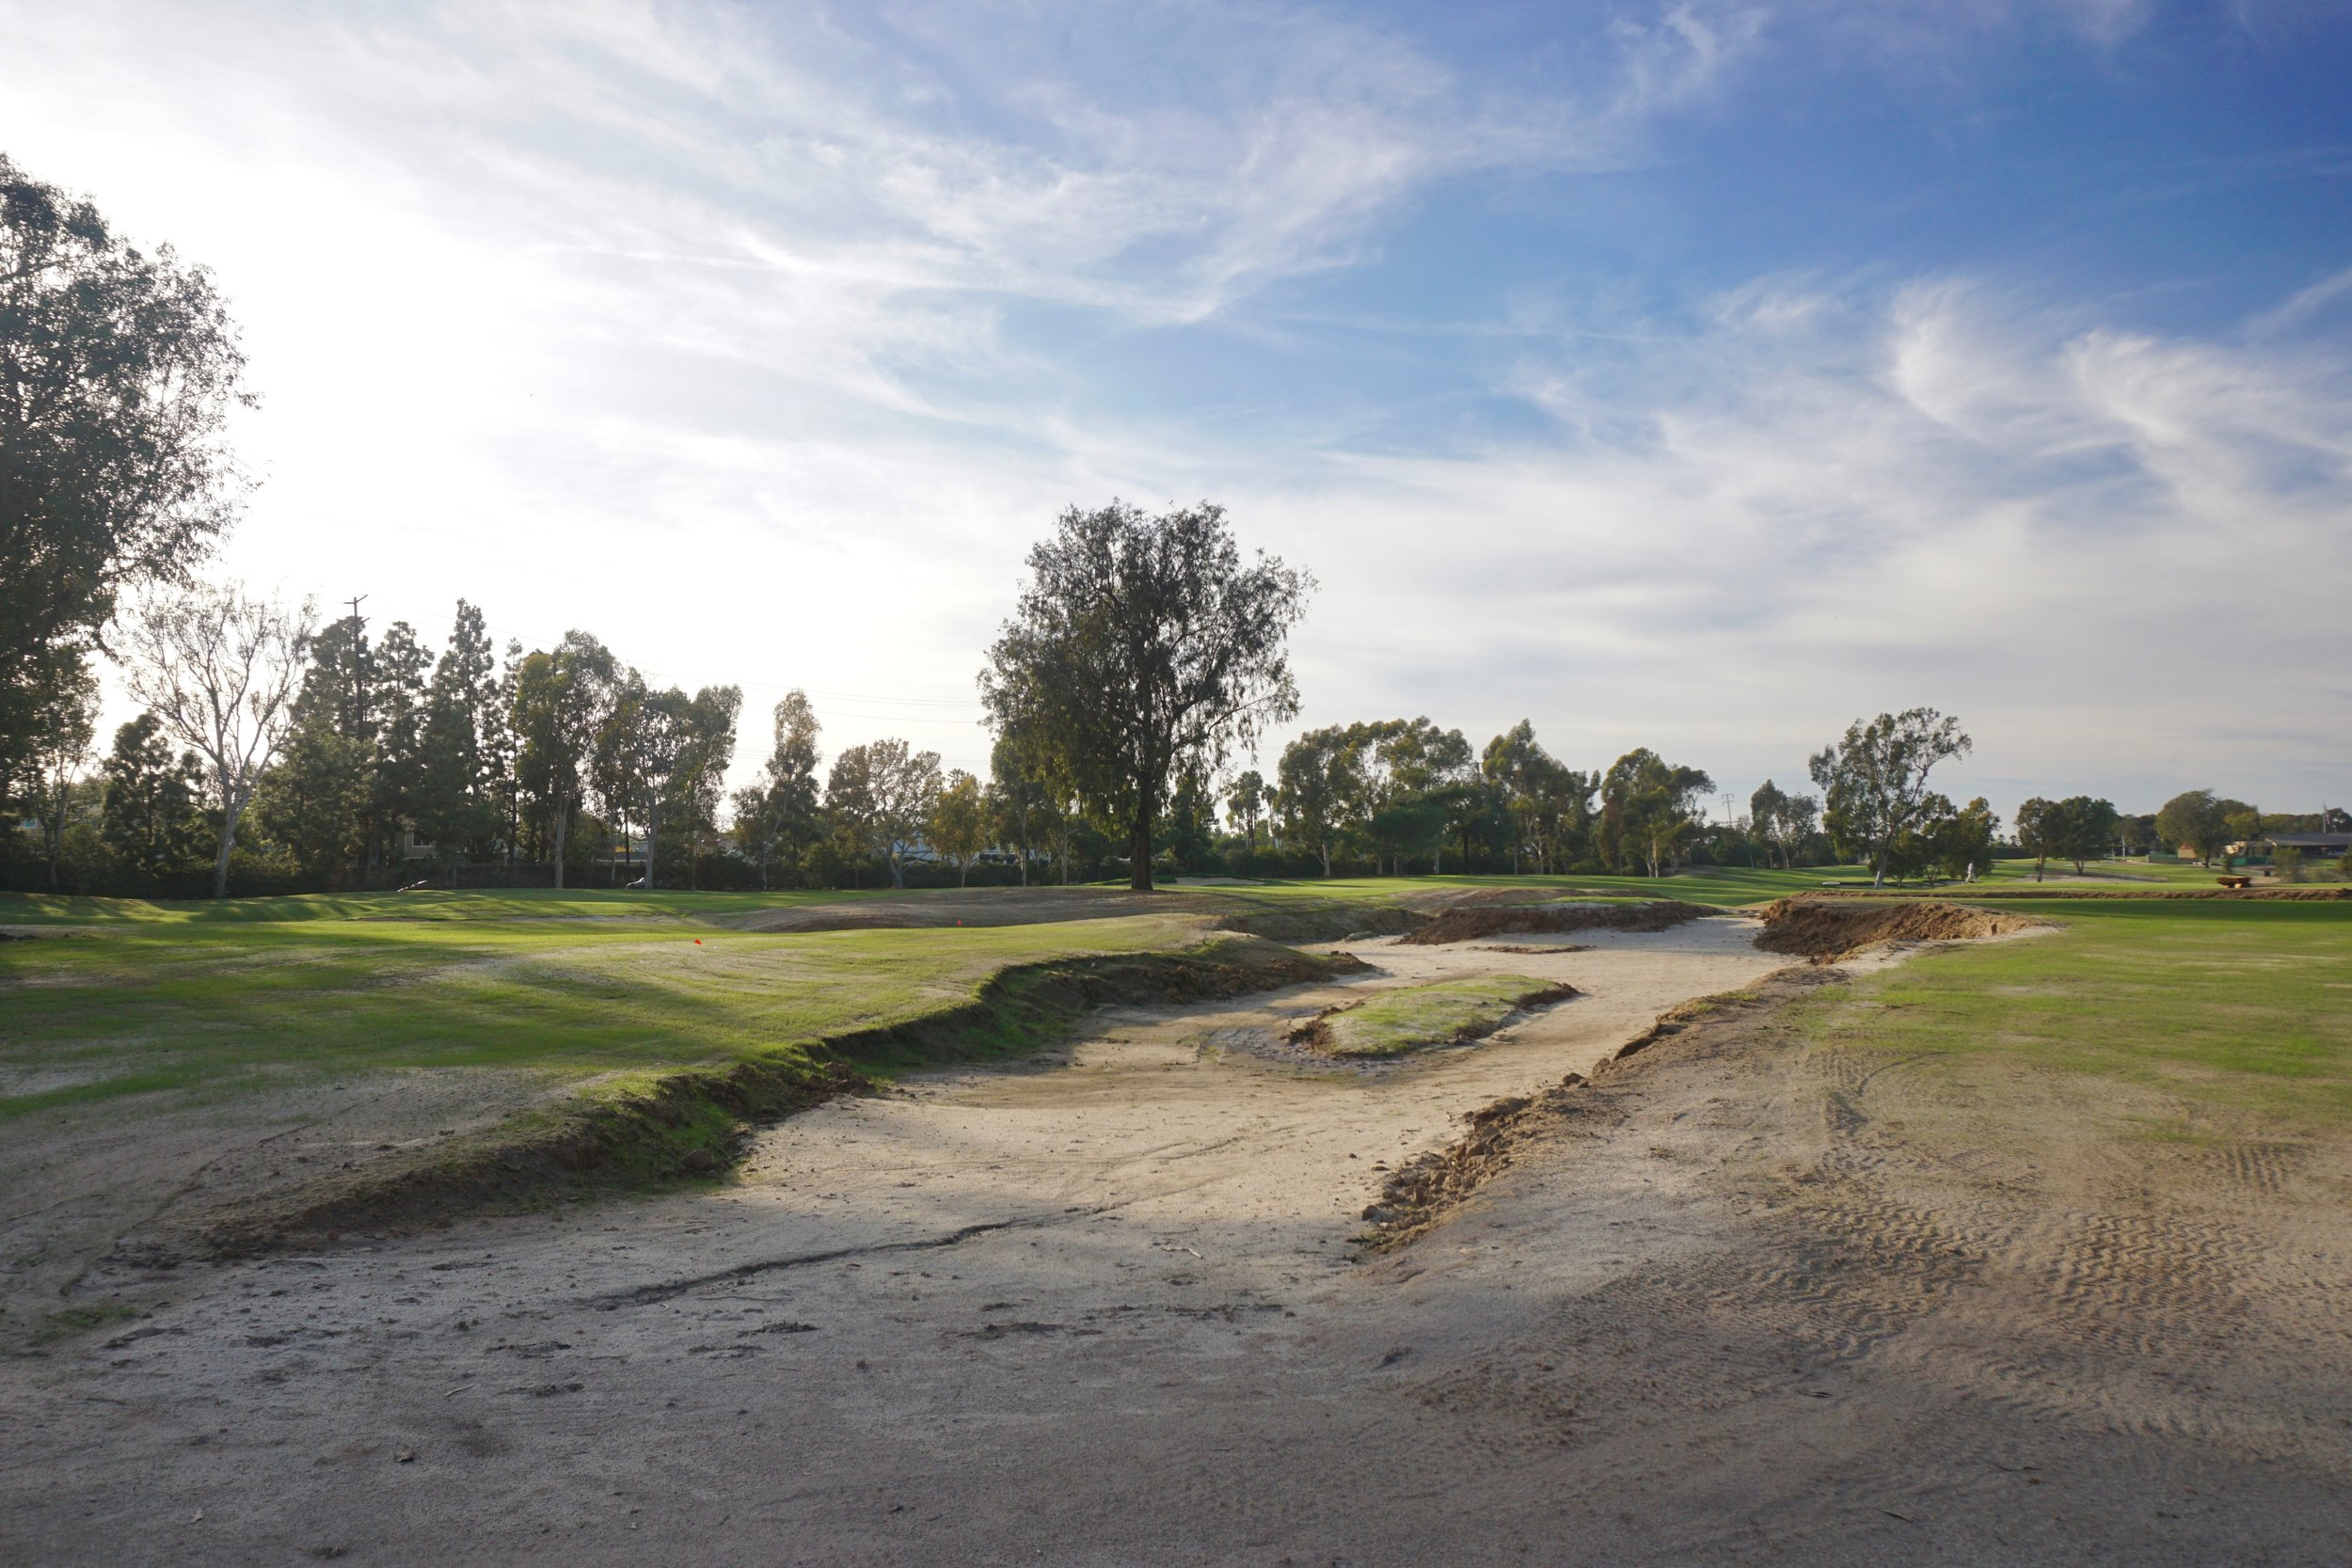 One way to generate fill for other parts of the project was to extend this wash into an out of play area between holes 2, 7, and 8.